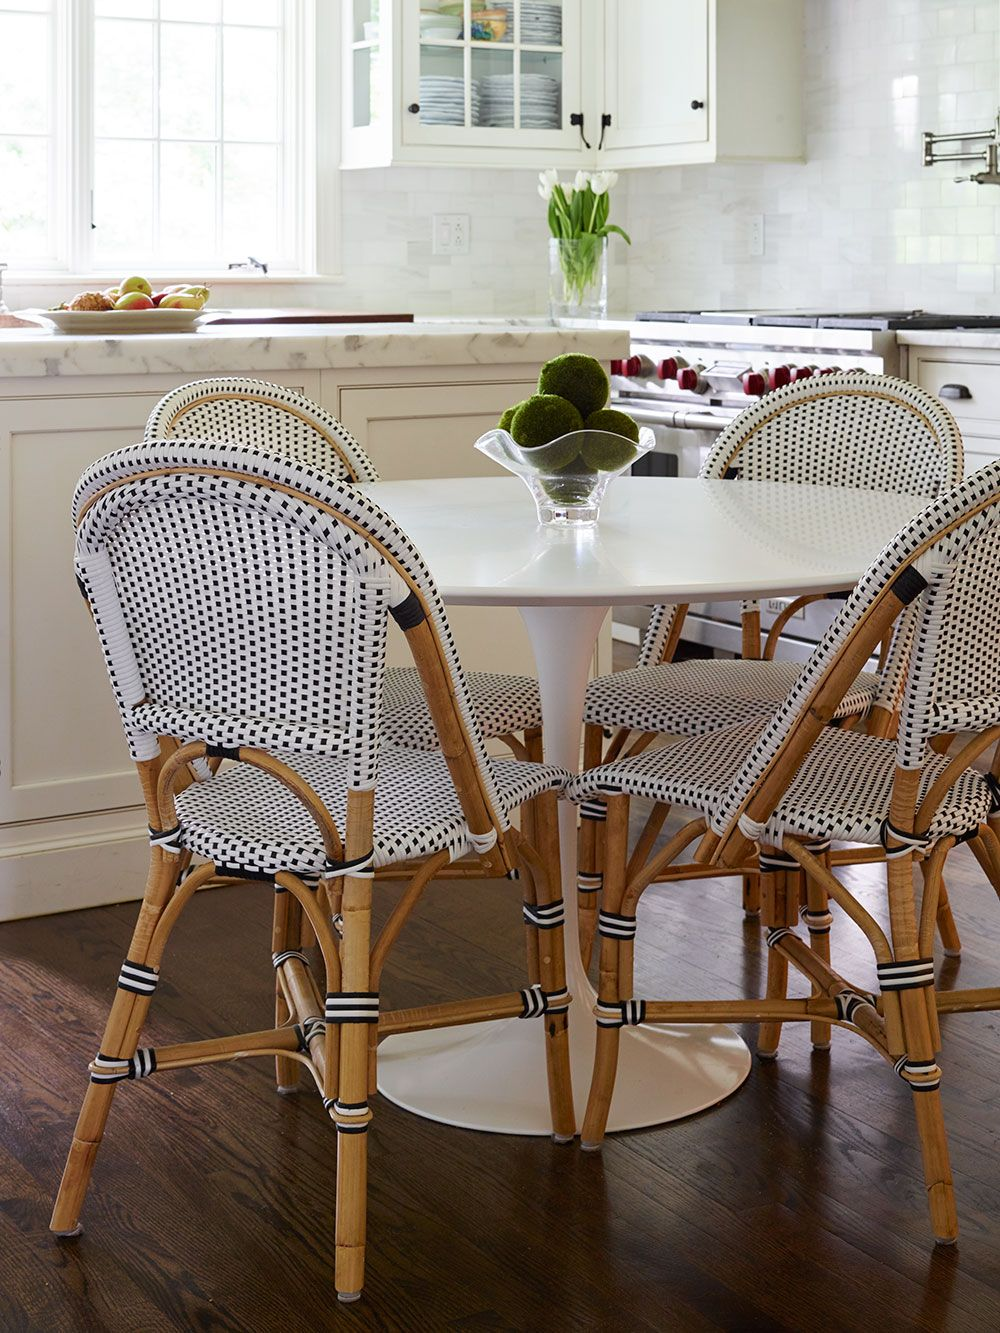 Classic White Kitchen With Cheerful Seating Area Serena And Lily